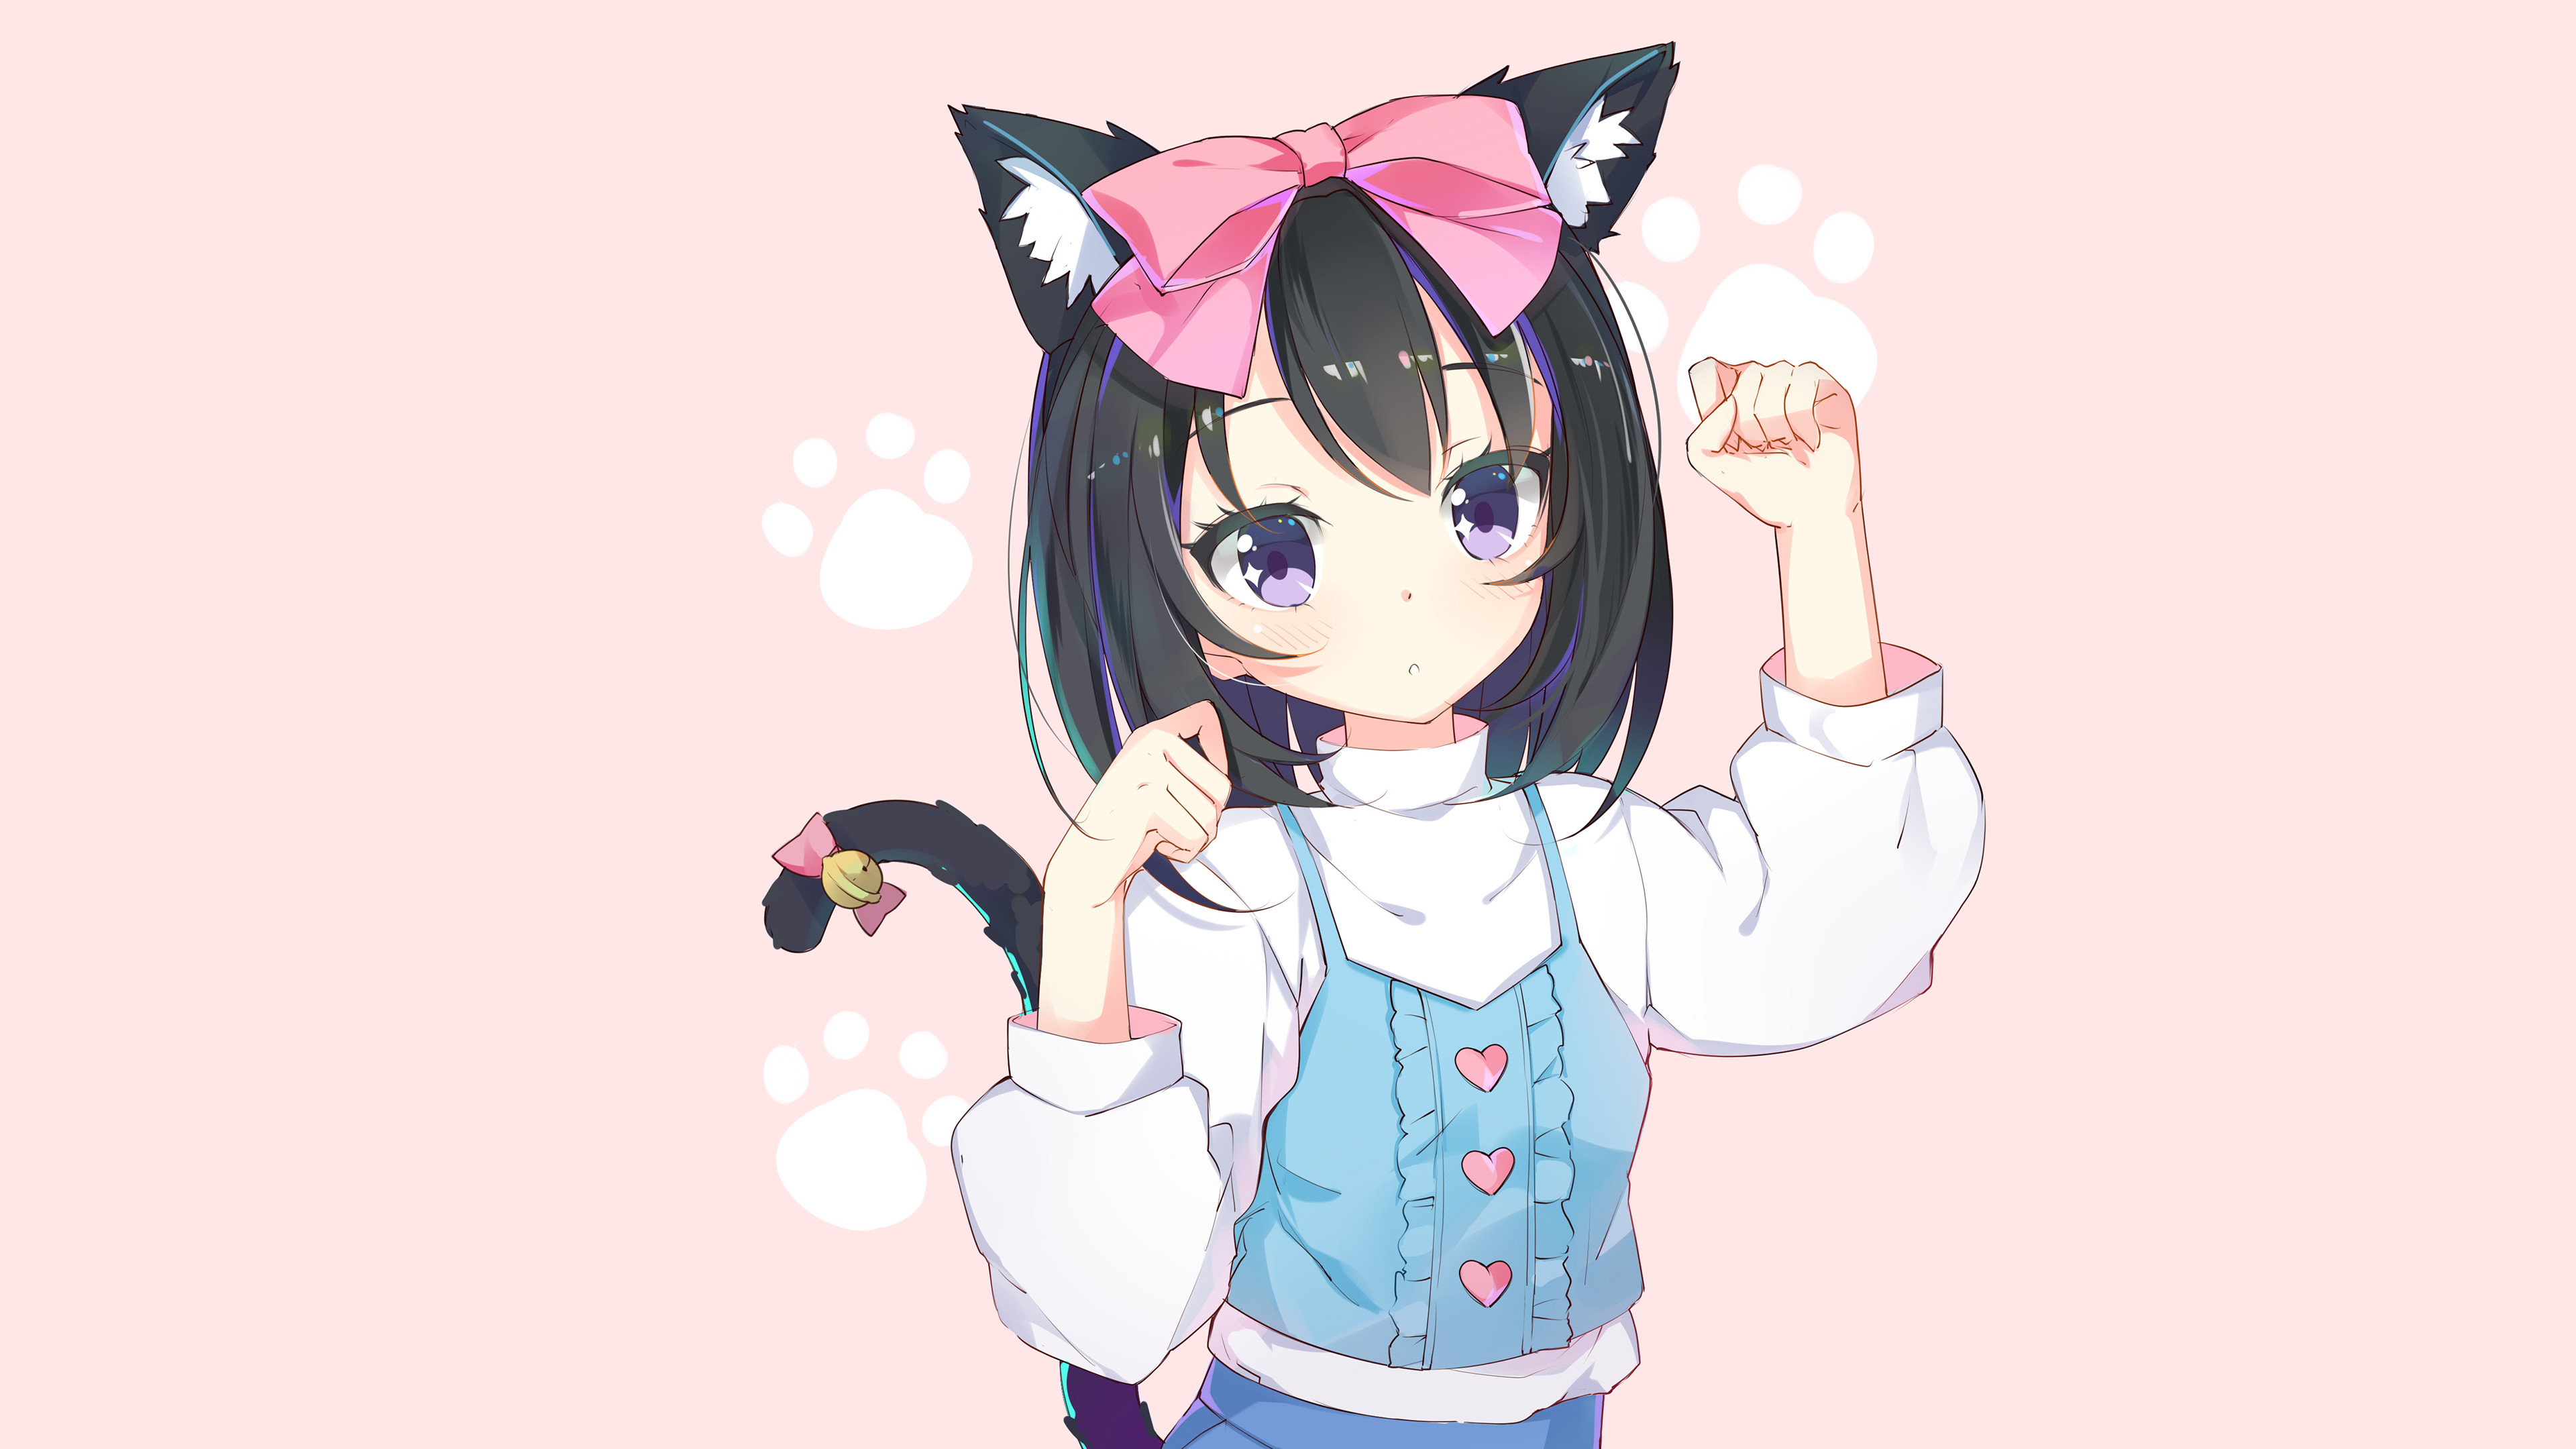 Anime cat girl wallpaper 72 images - Anime kitty girl ...